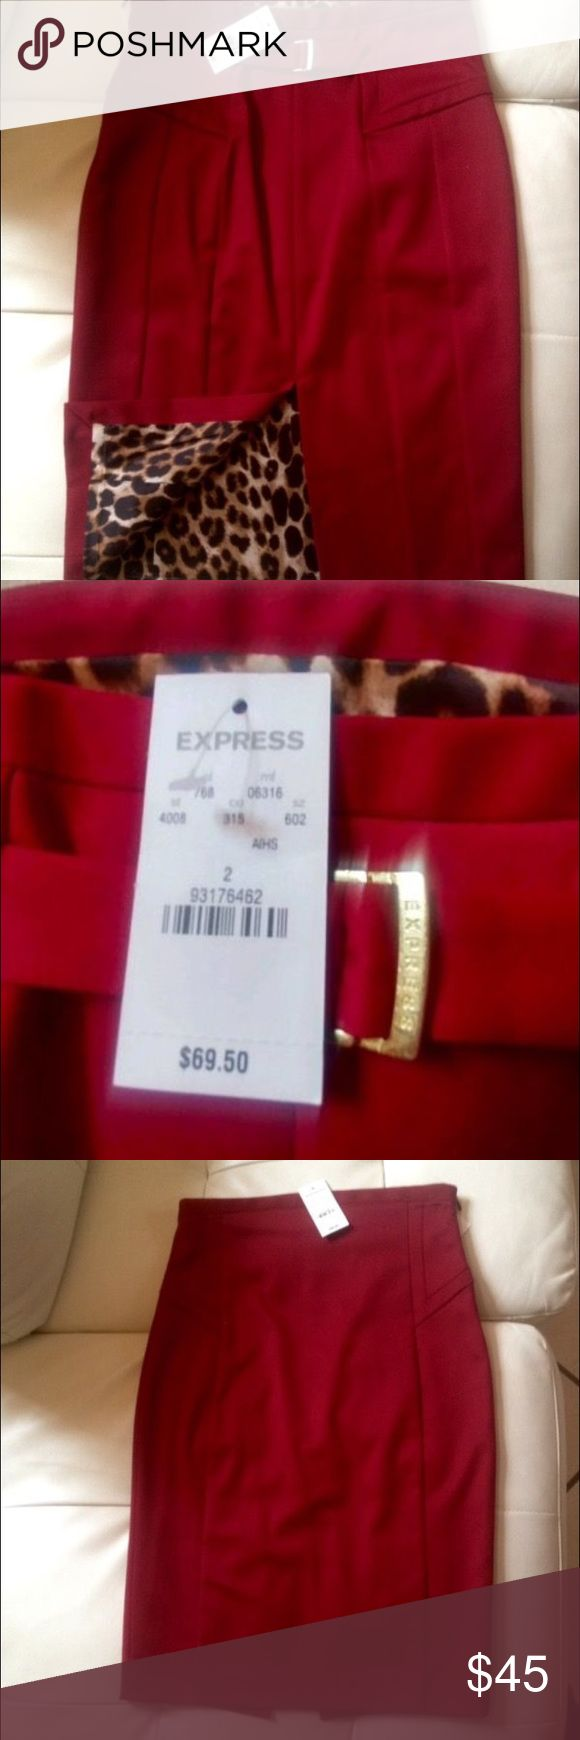 Express Pencil Skirt Brand new never used Express red and leopard pencil skirt in size 2. Satin leopard lining. Original tags attached. Retails for $69.00. Asking $45 or best offer. Express Skirts Pencil